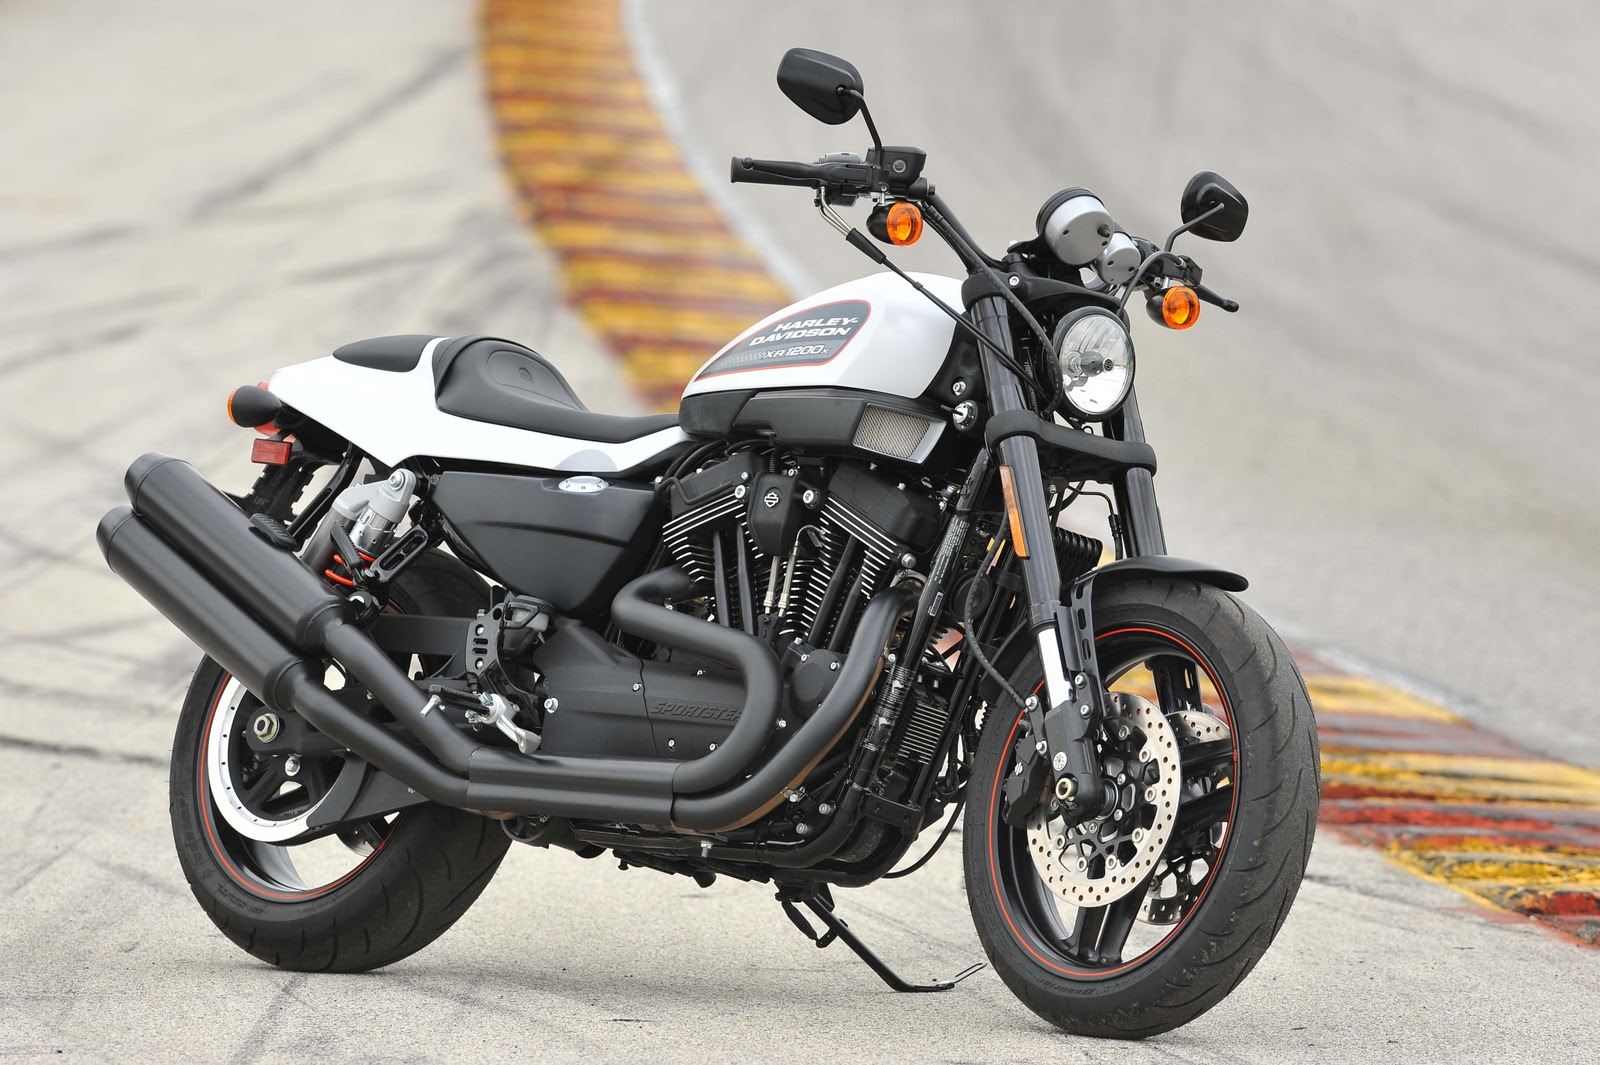 cycle guide magazine: ride review: harley-davidson xr1200x